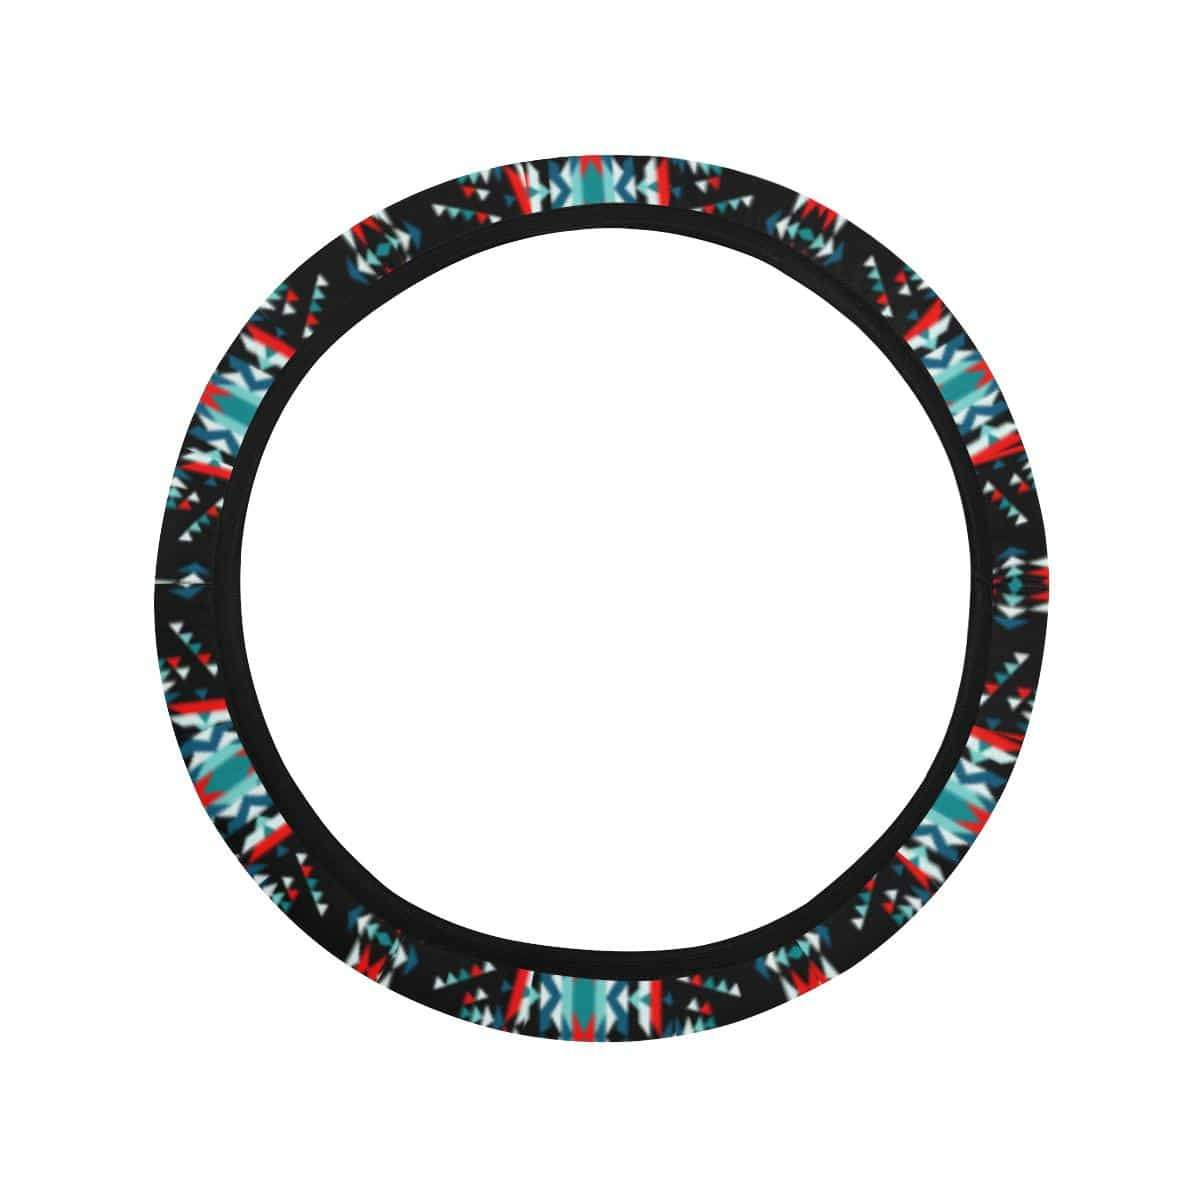 Visions of Peaceful Nights Steering Wheel Cover with Elastic Edge Steering Wheel Cover with Elastic Edge e-joyer